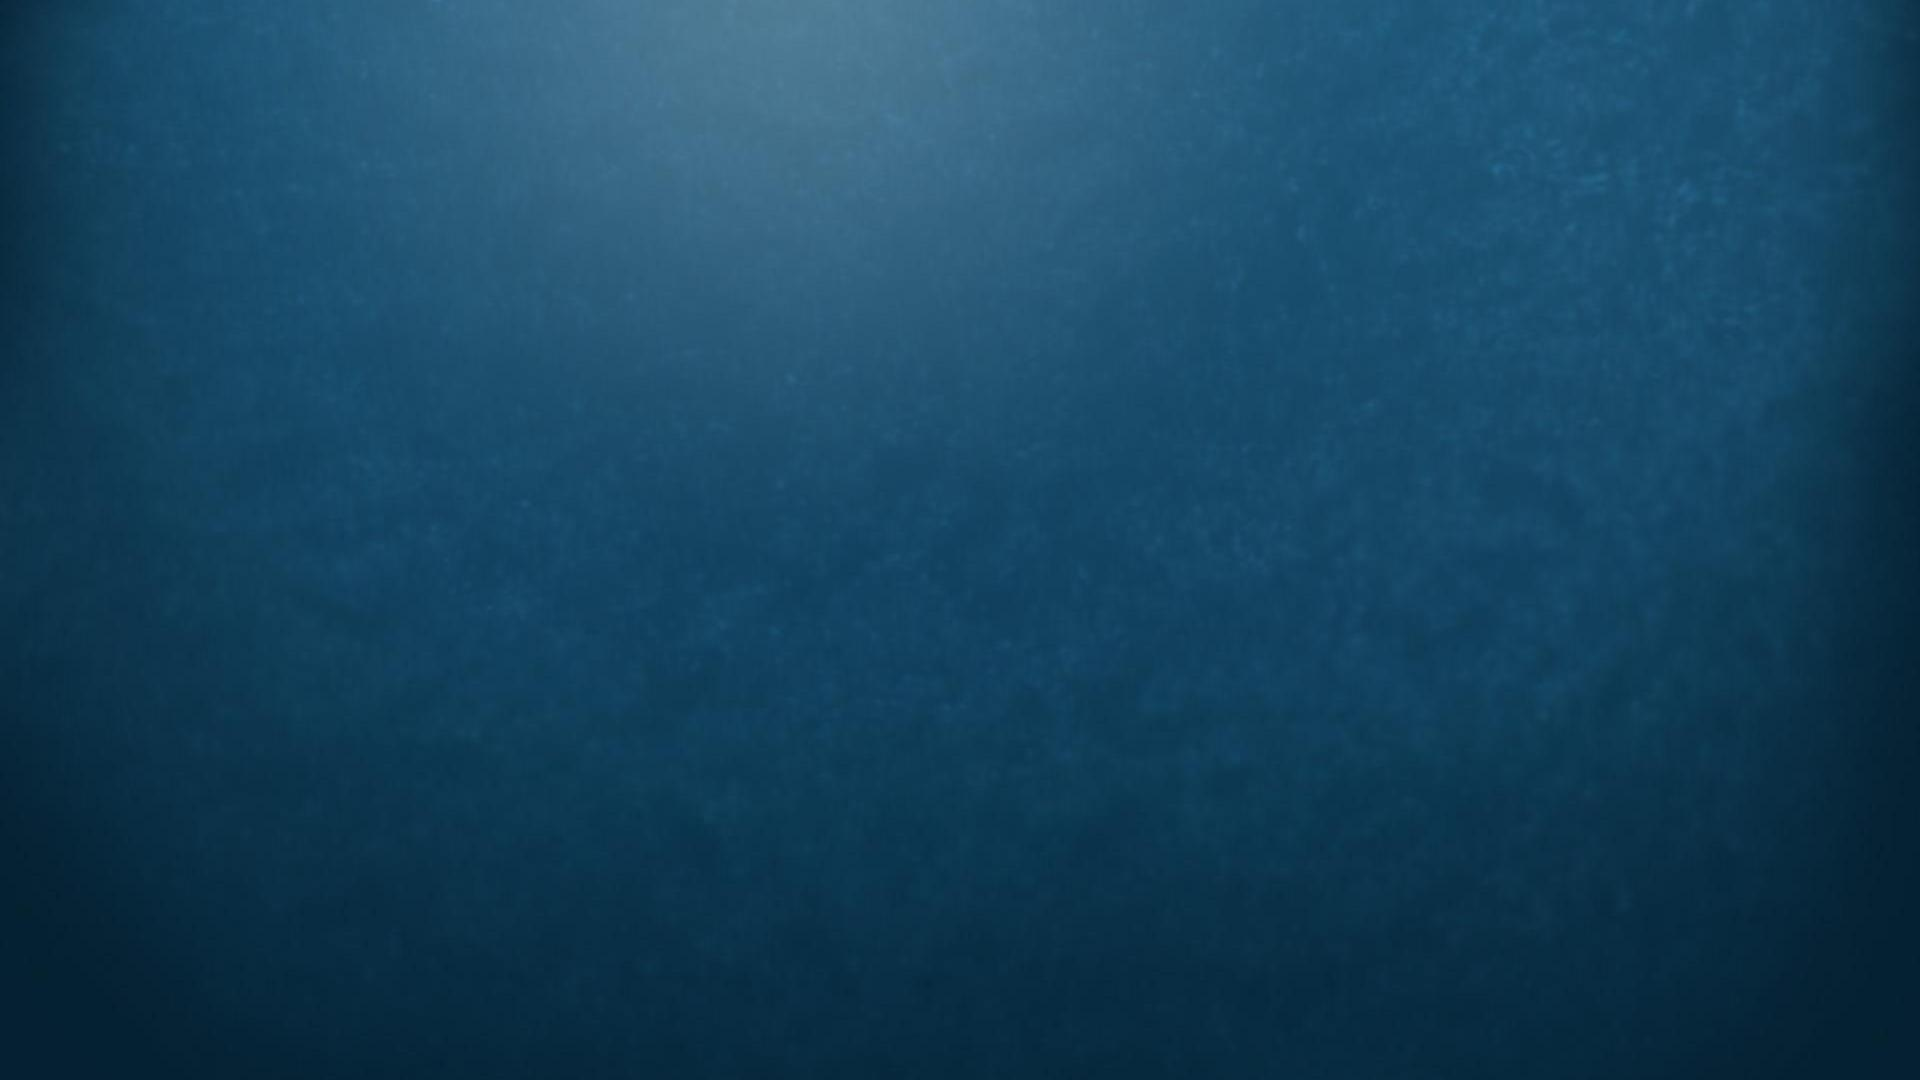 wallpaper gradient blue abstract wallpapers 1920x1080 1920x1080